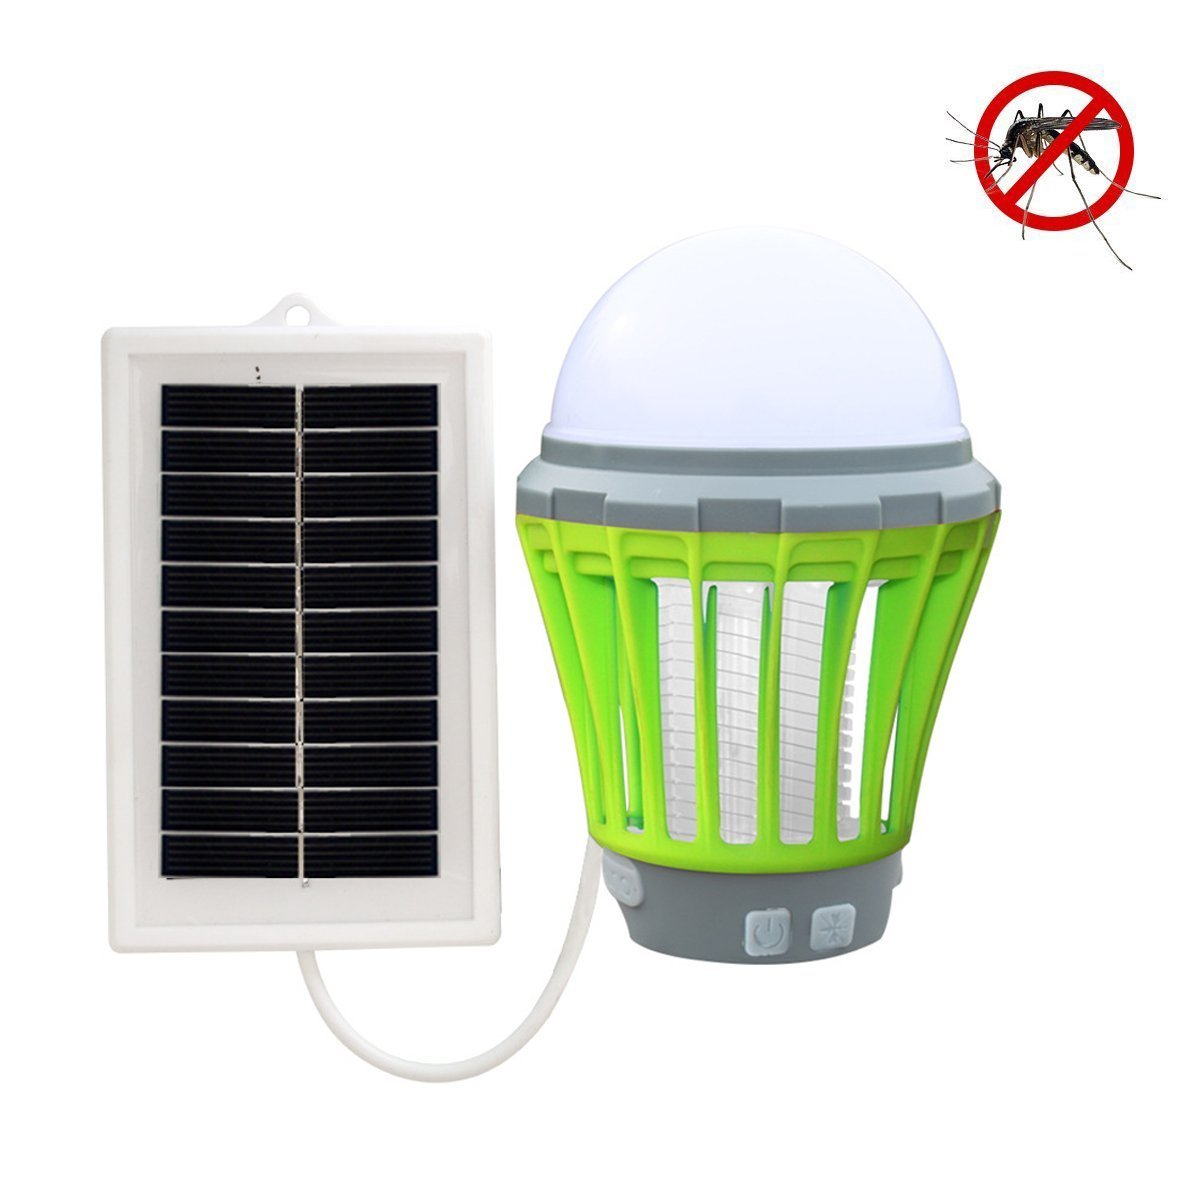 MUEQU 2-in-1 Solar Camping Lantern Mosquito Killer Lamp,Portable Waterproof Rechargeable Mosquito Zapper Tent Light,Anti Bug Insect Repellent with Retractable Hook USB Charging and Solar Charging for Garden Courtyard Outdoor Indoor